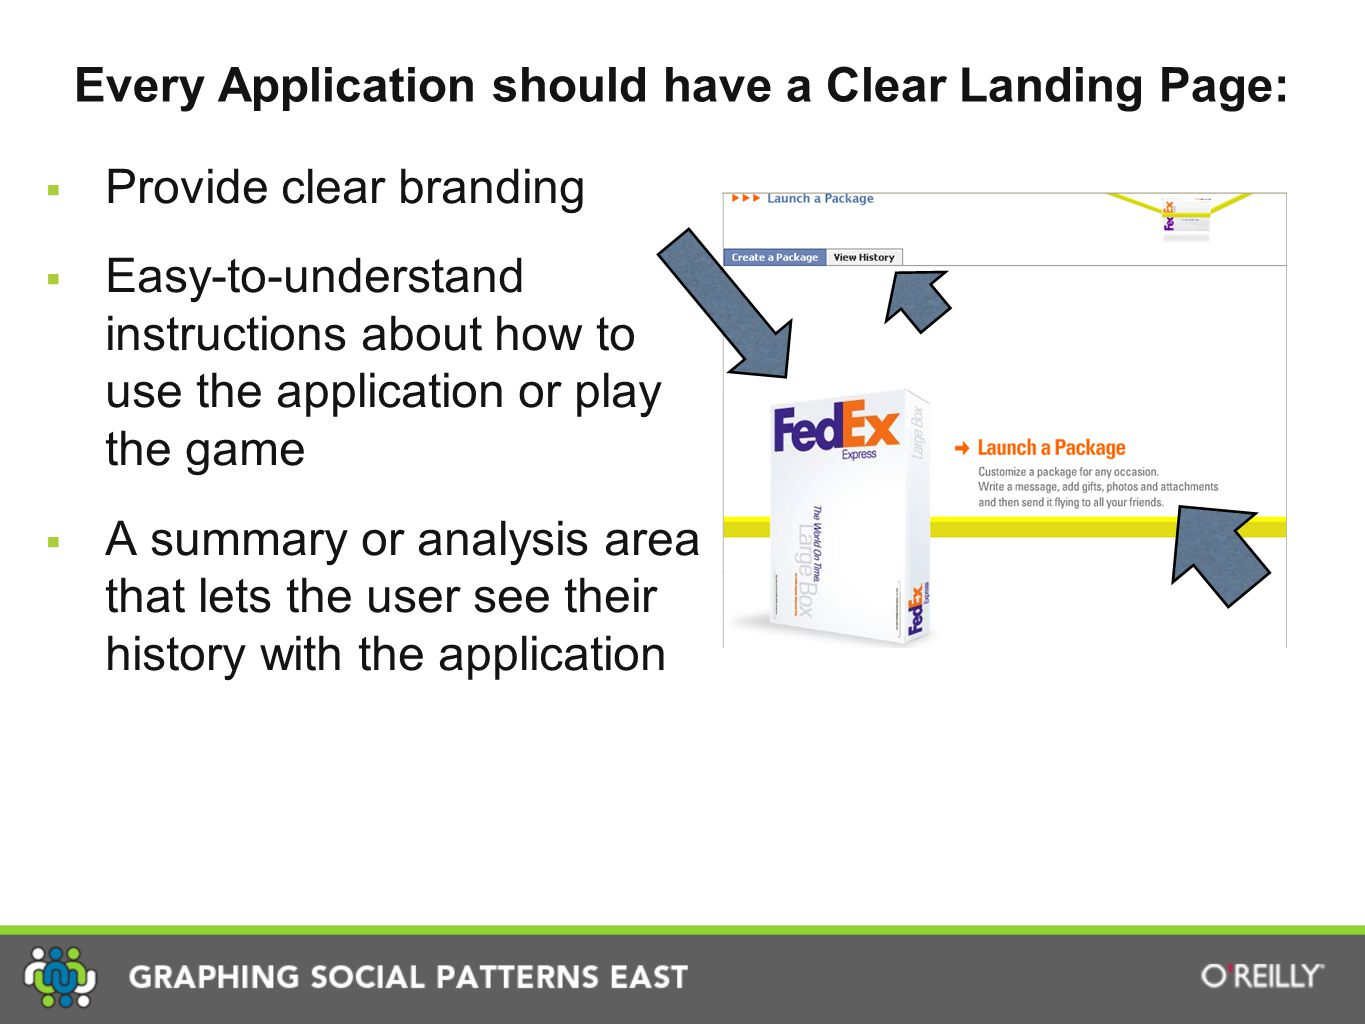 Every Application should have a Clear Landing Page:  Provide clear branding  Easy-to-understand instructions about how to use the application or play the game  A summary or analysis area that lets the user see their history with the application